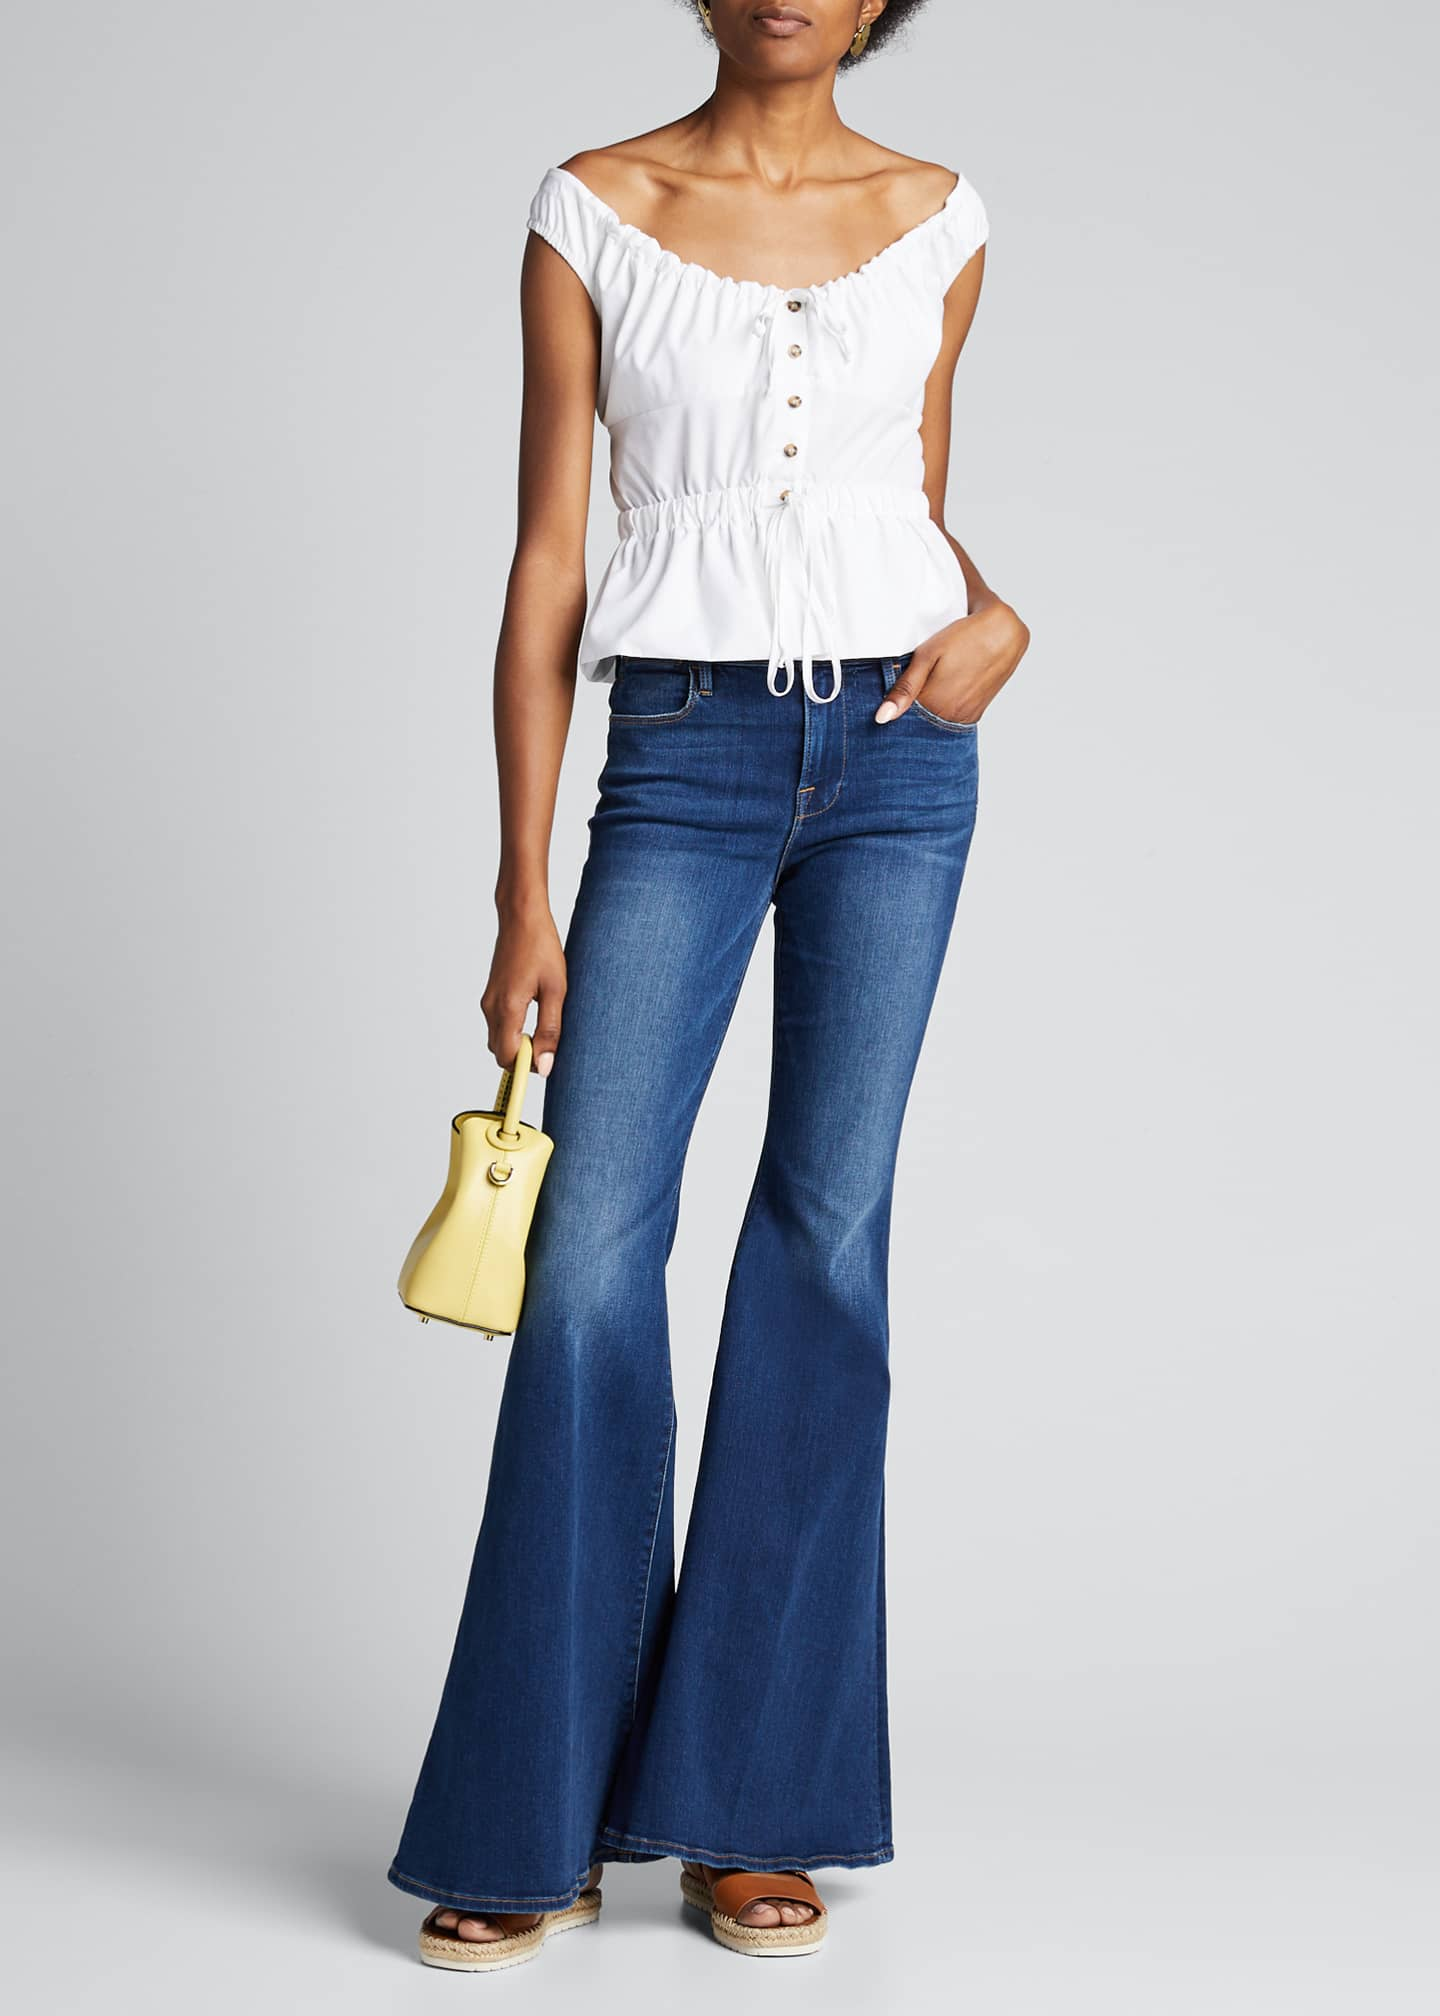 FRAME Le High Super Flare Jeans